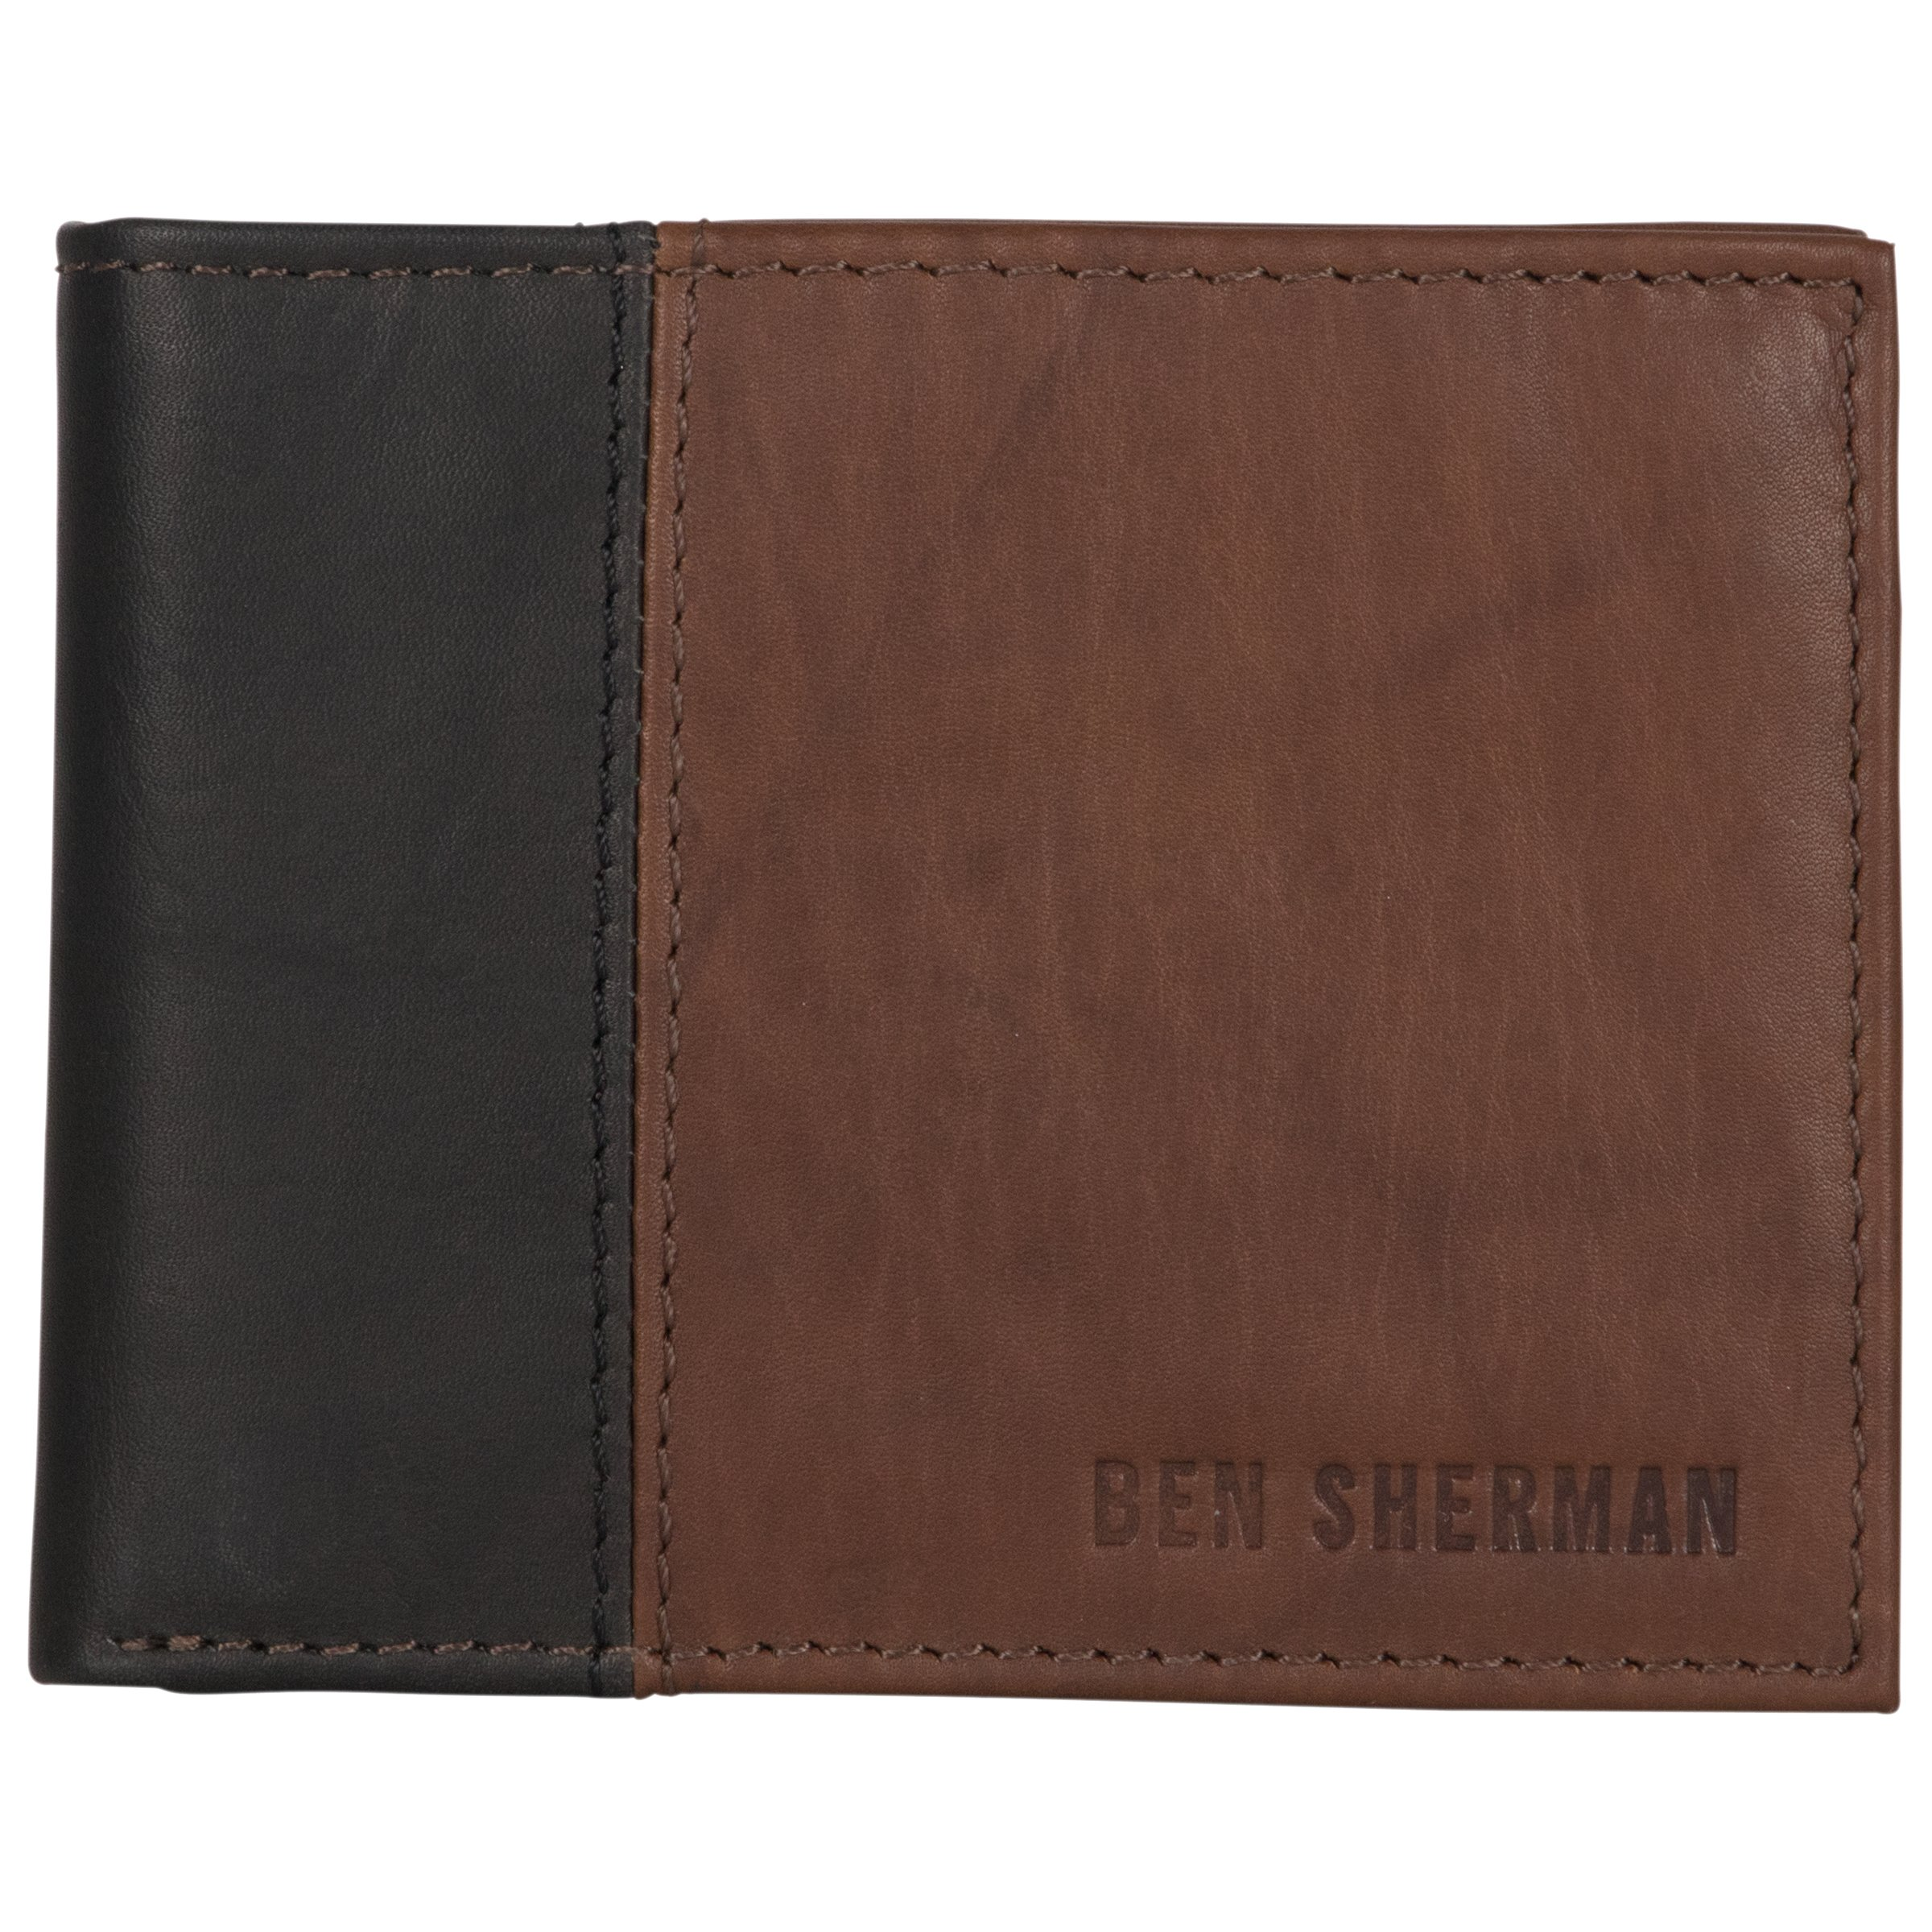 Ben Sherman Men's Leather Bi-Fold Passcase Wallet with Flip up Id Window (Rfid), Brown with Black Color Block